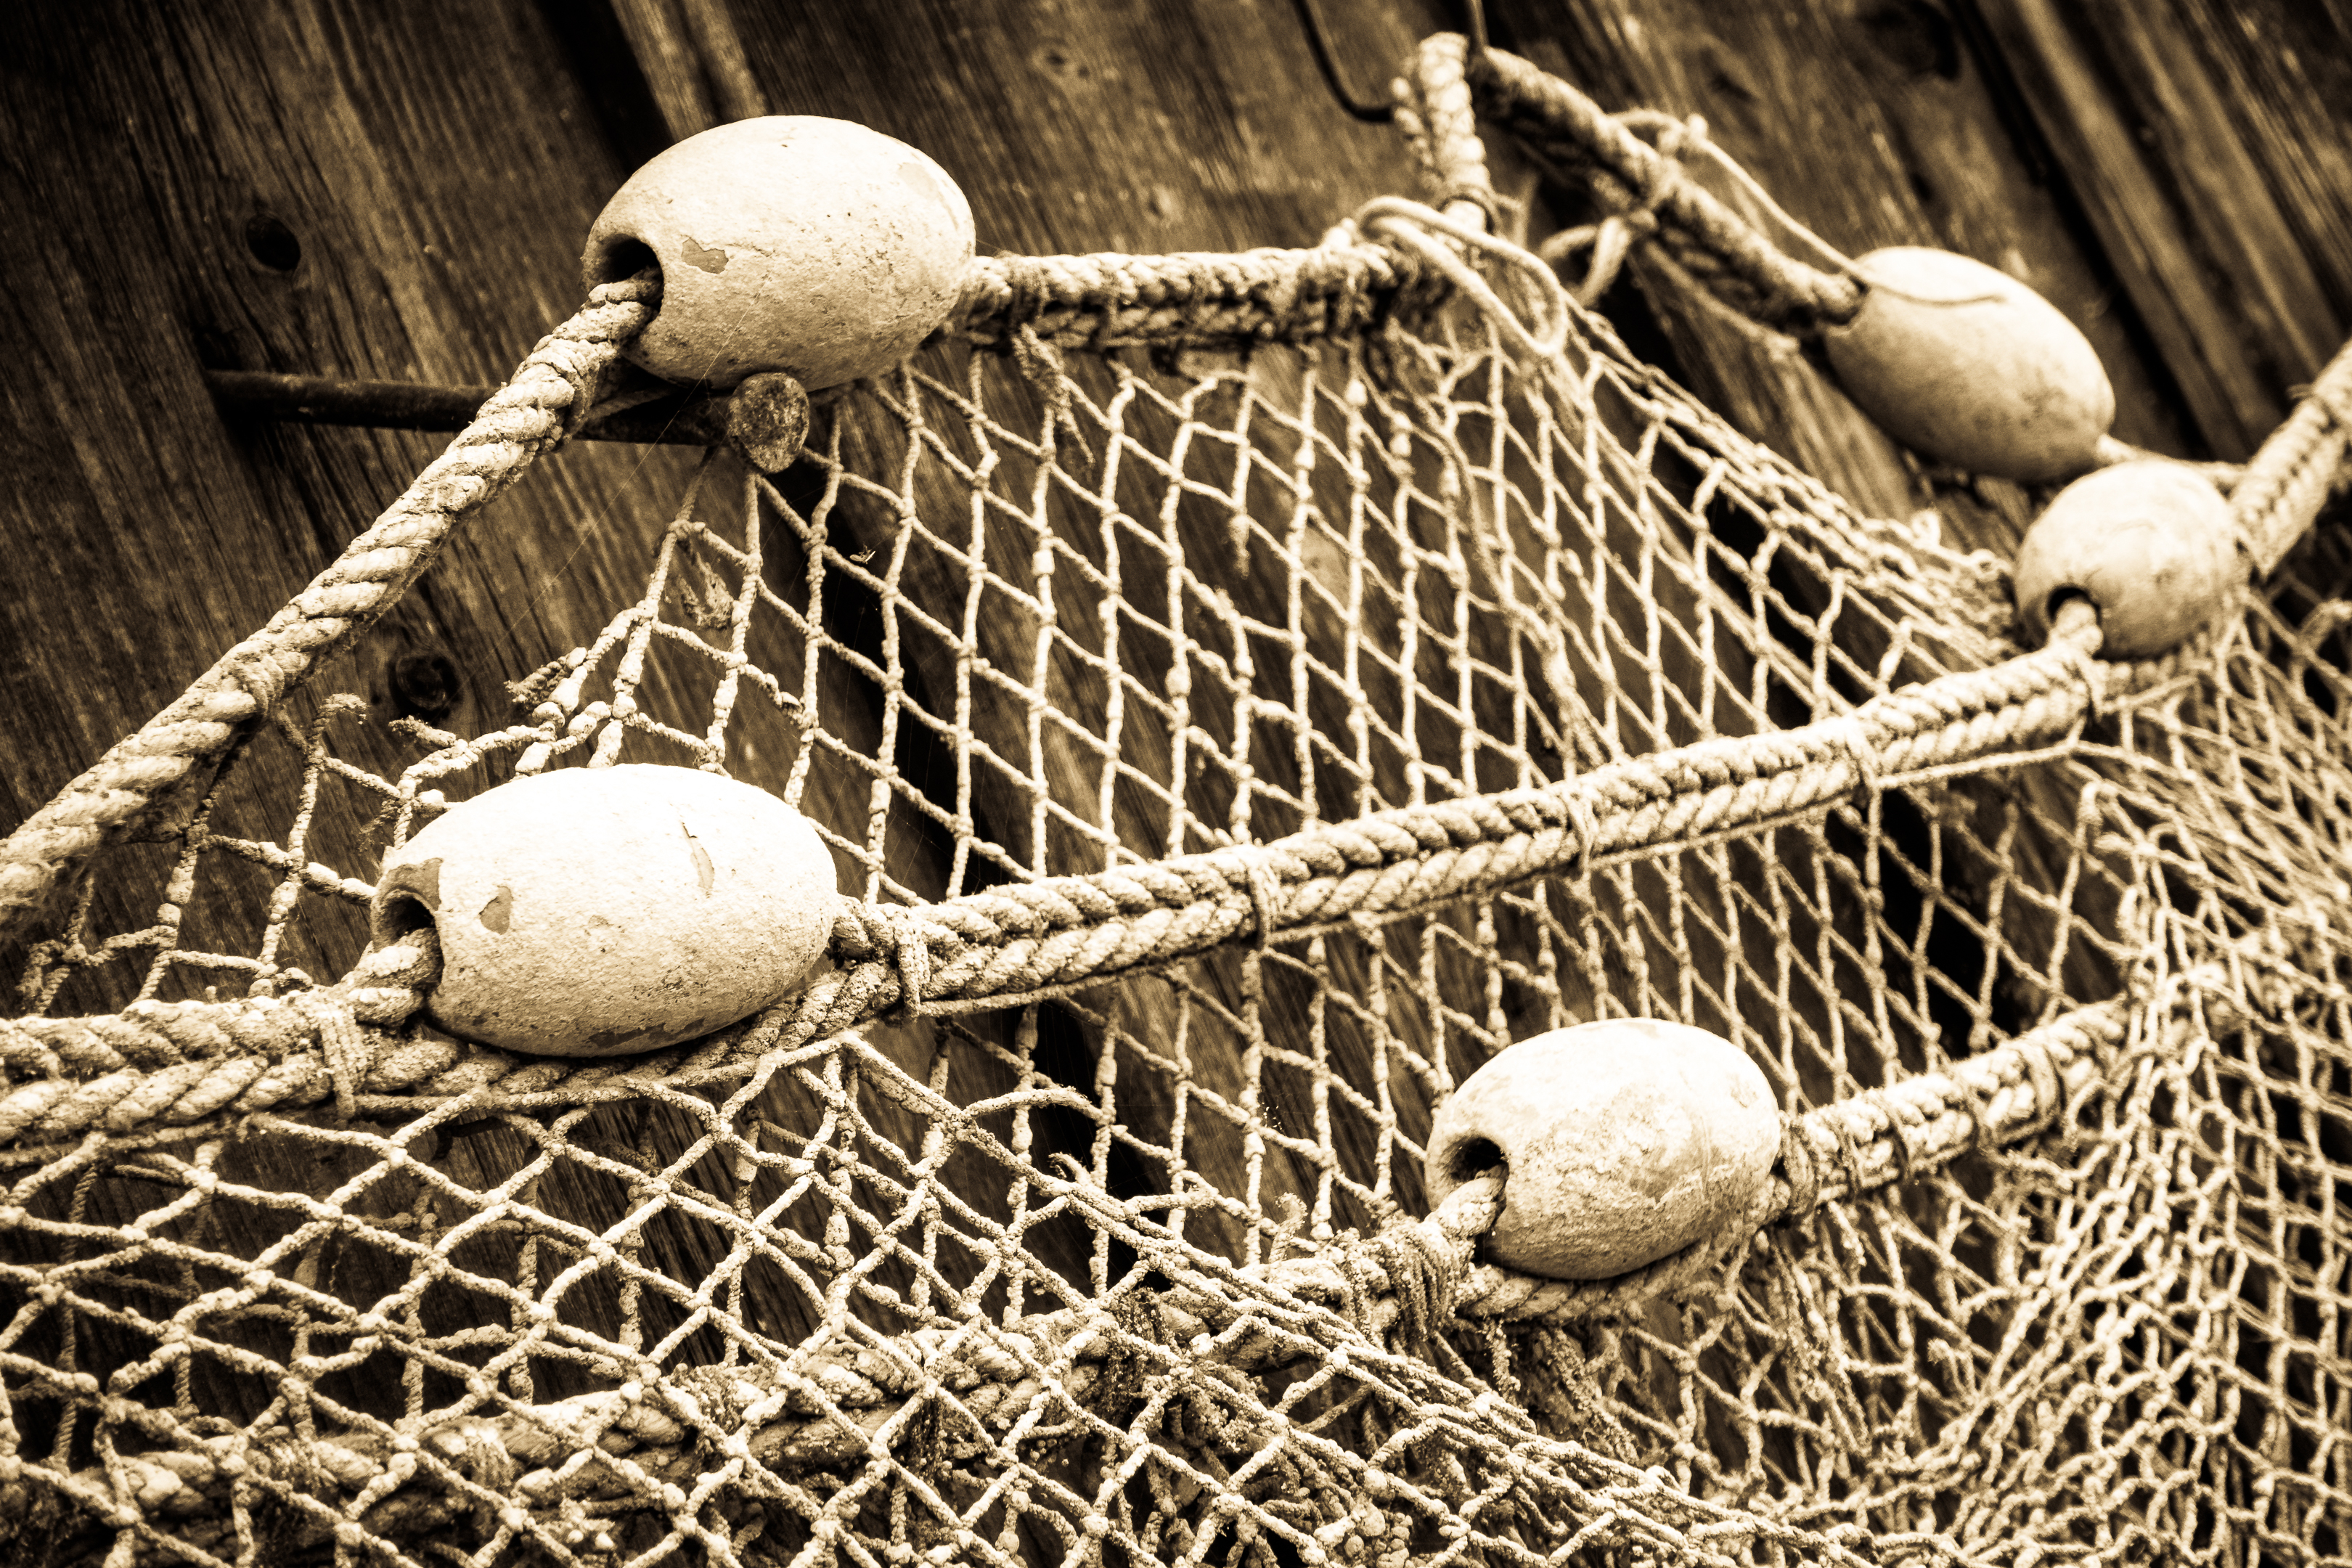 FooTToo by Shutterstock netting, an old fashioned fisherman's net